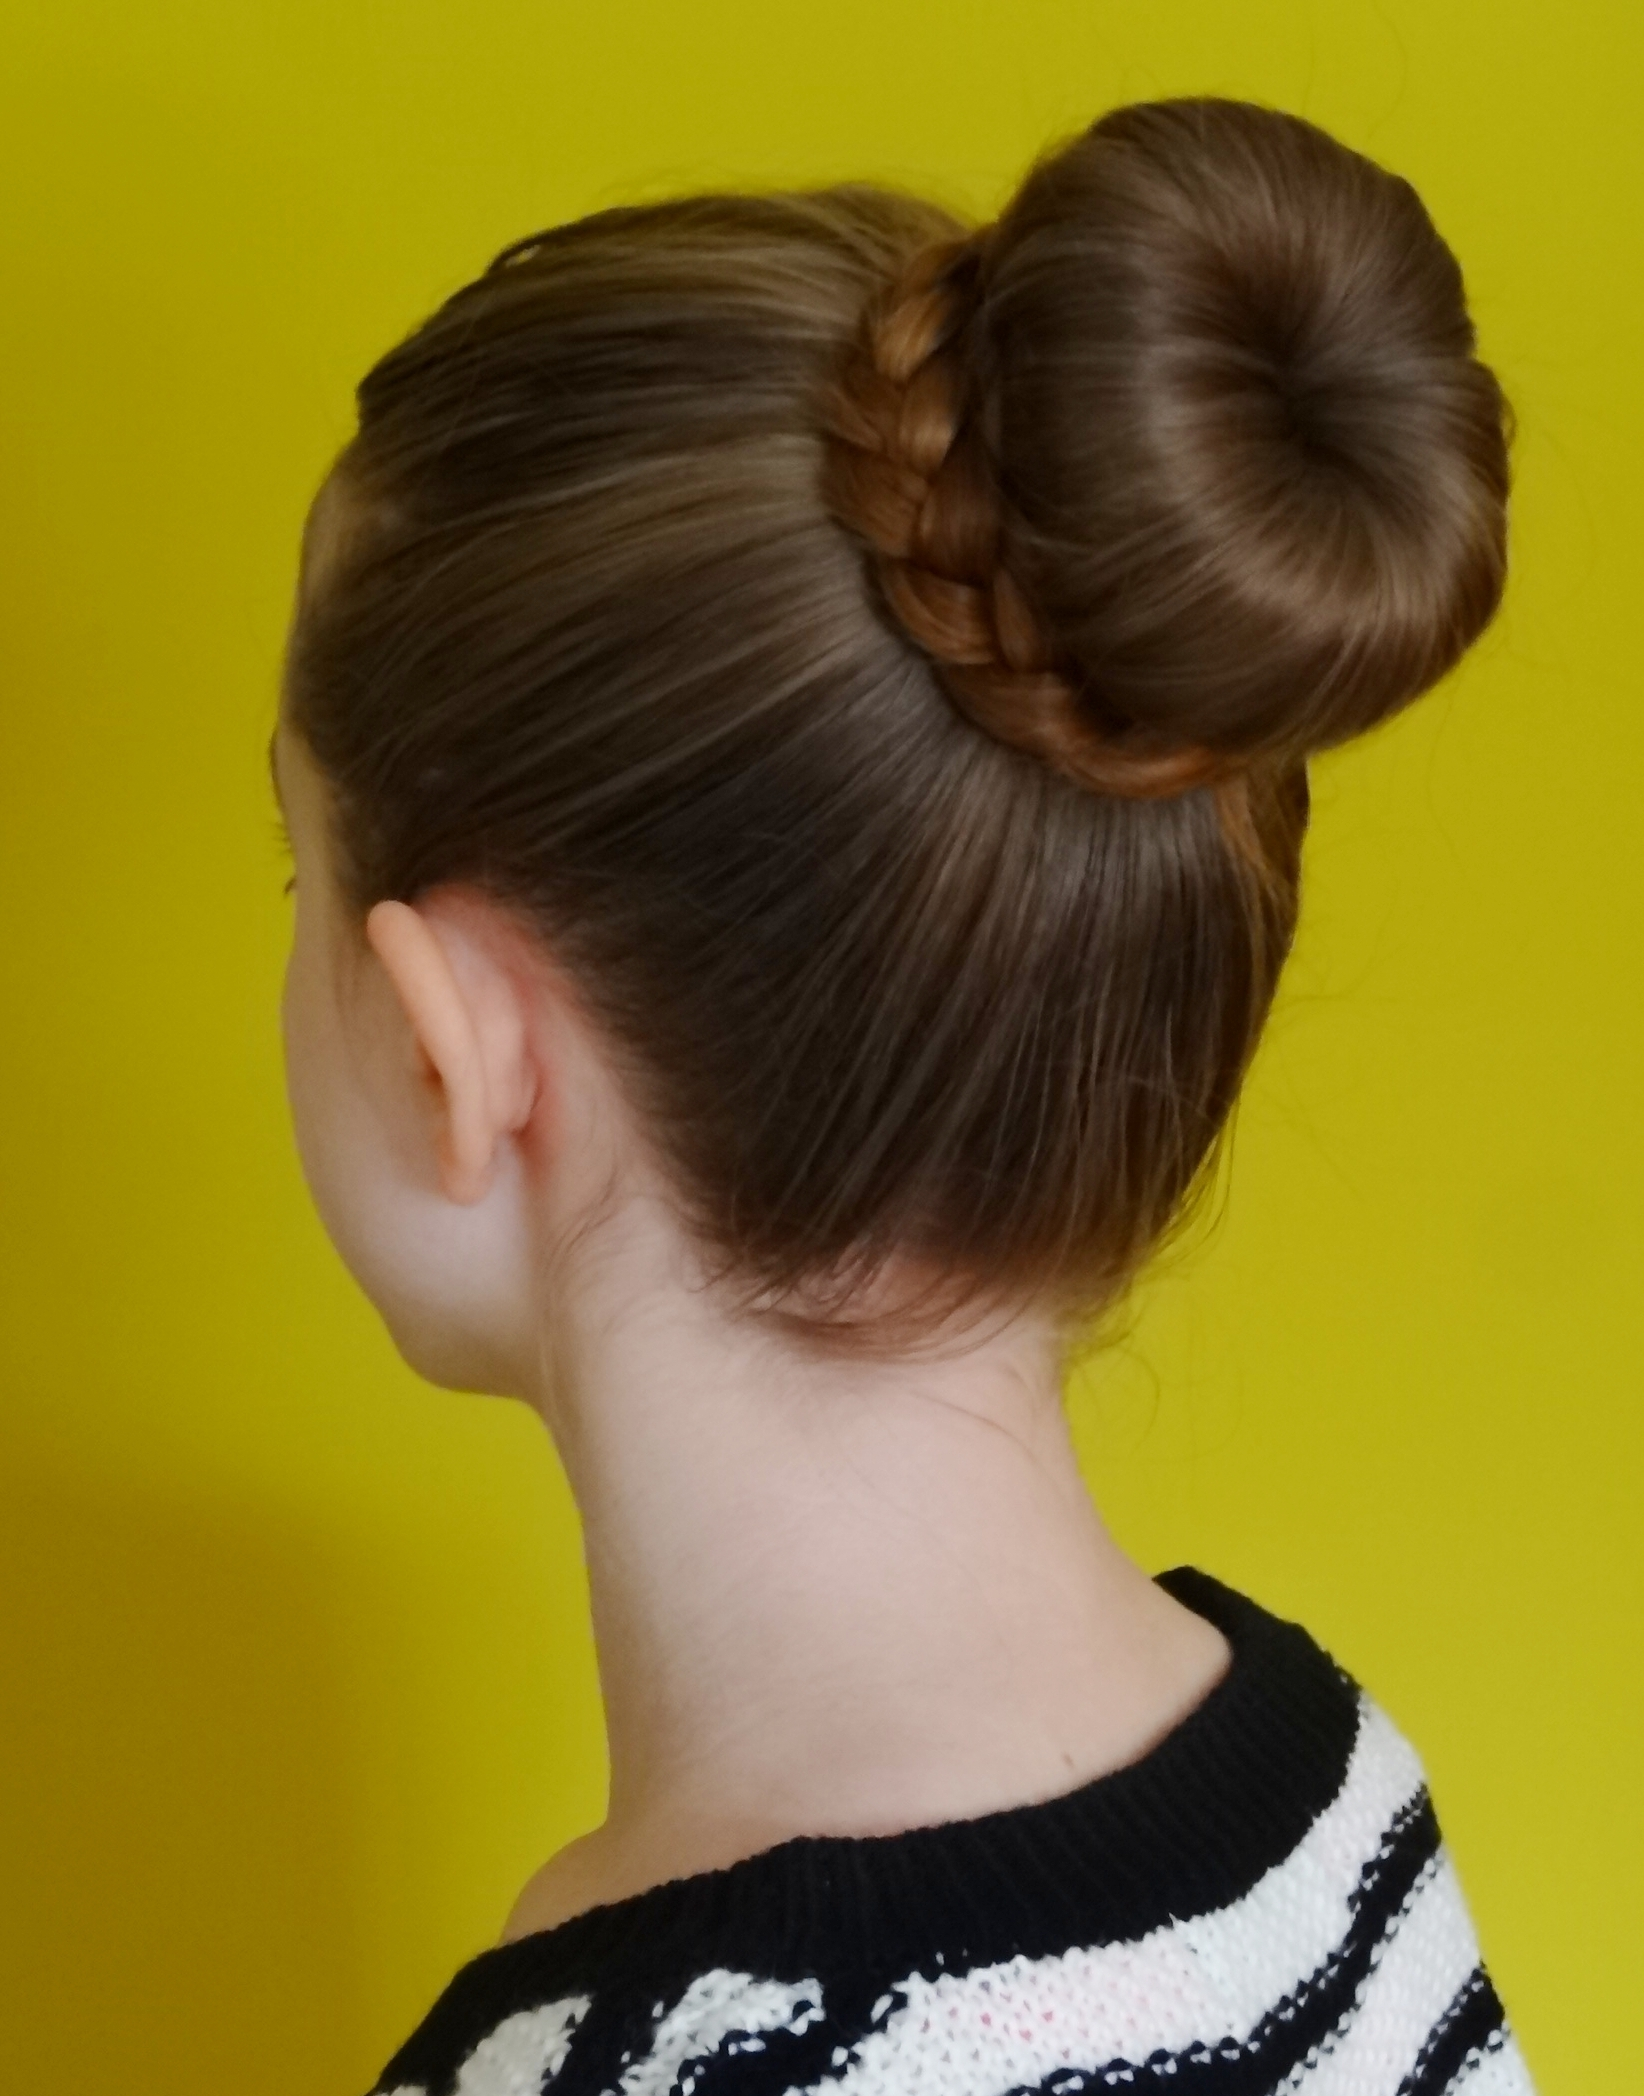 Fashionable Sky High Pompadour Braid Pony Hairstyles Throughout Bun (hairstyle) – Wikipedia (View 10 of 20)